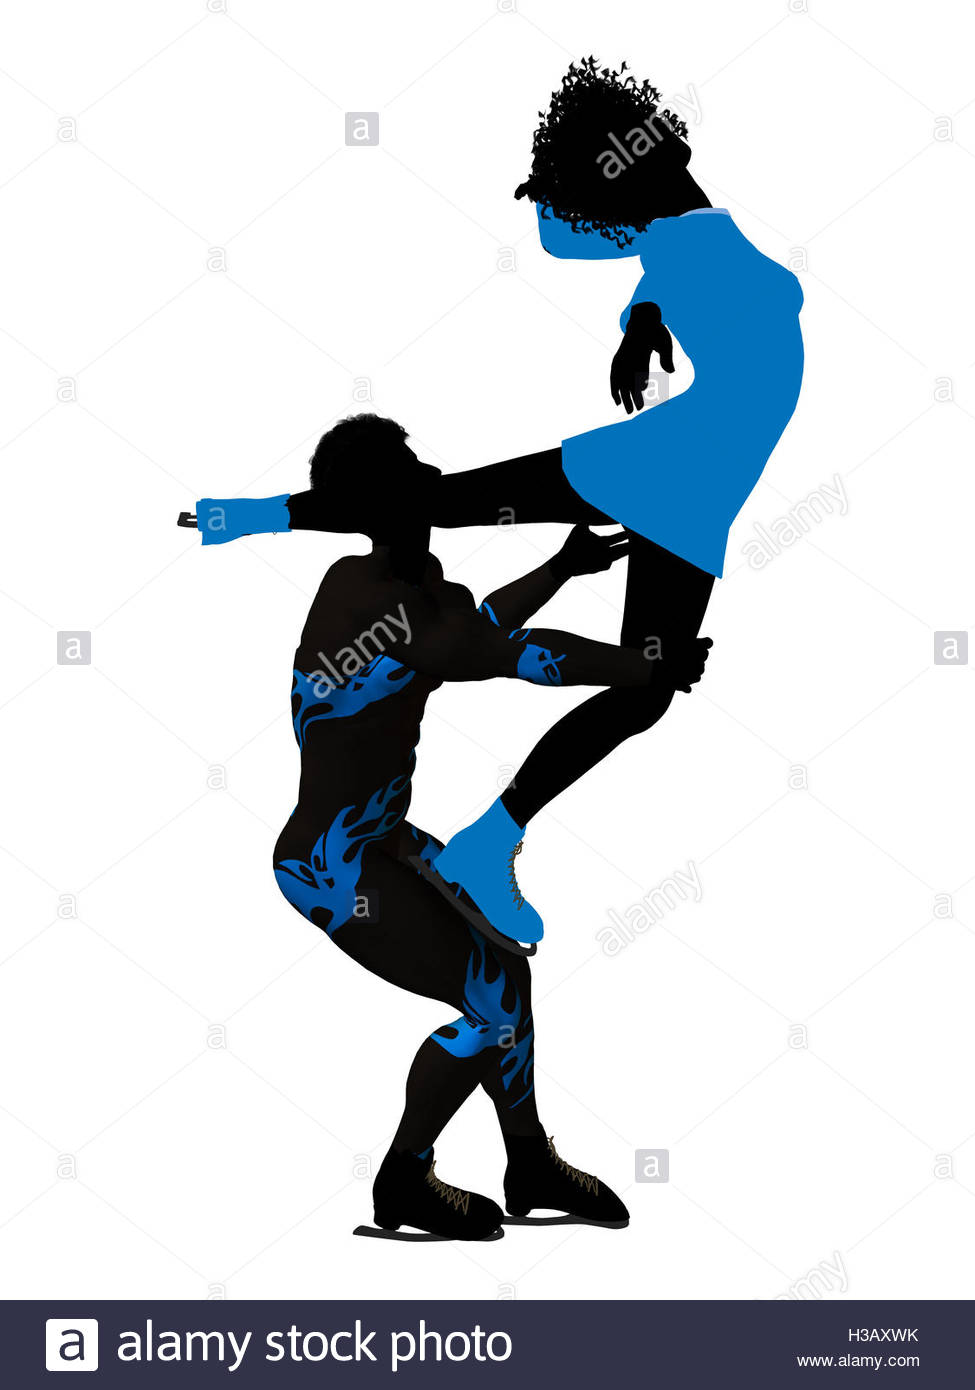 975x1390 African American Couple Ice Skating Silhouette Stock Photo